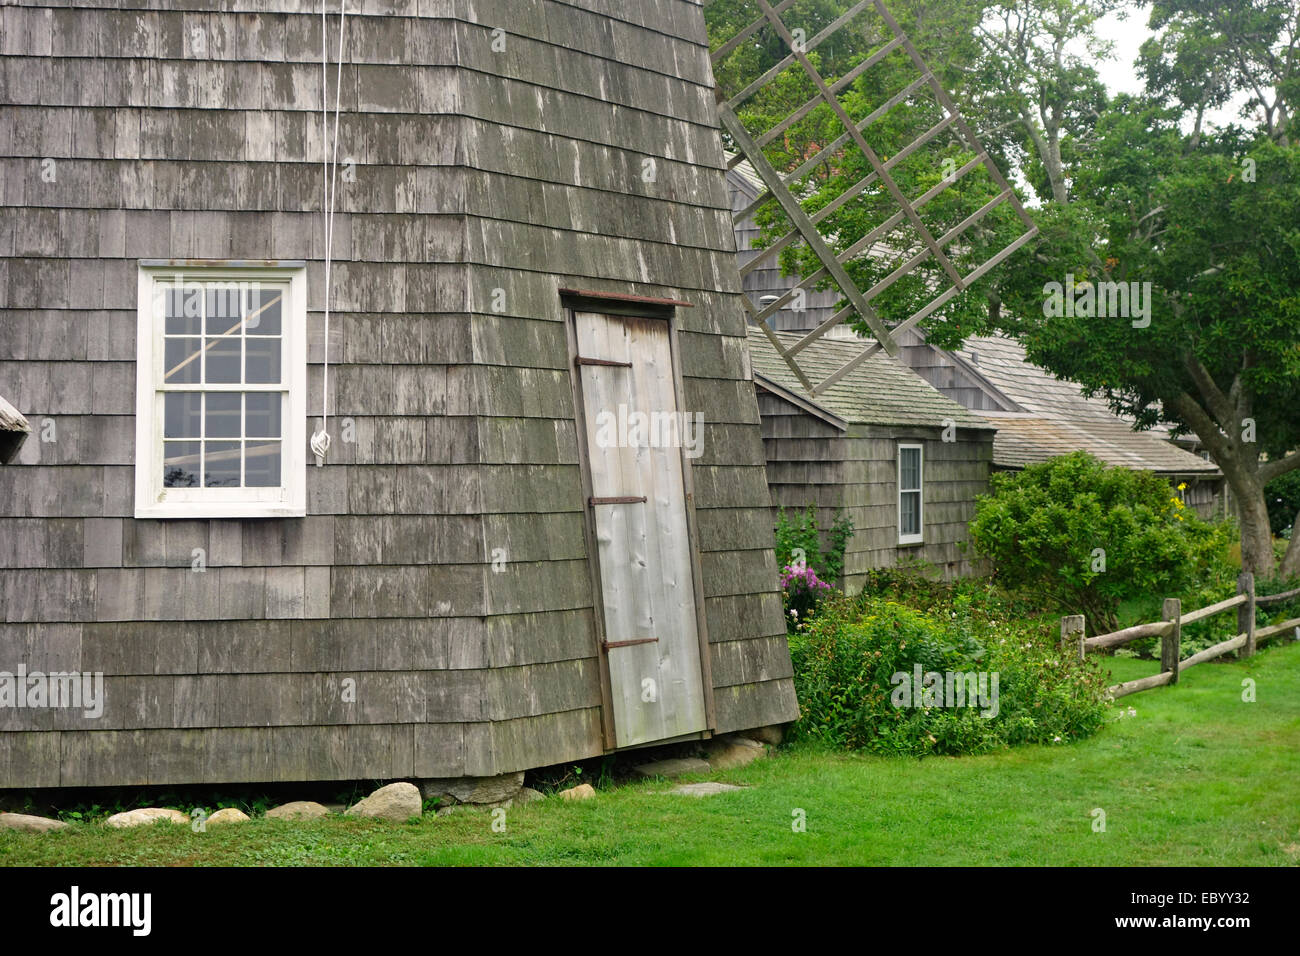 home sweet home museum in Easthampton Long Island NY - Stock Image